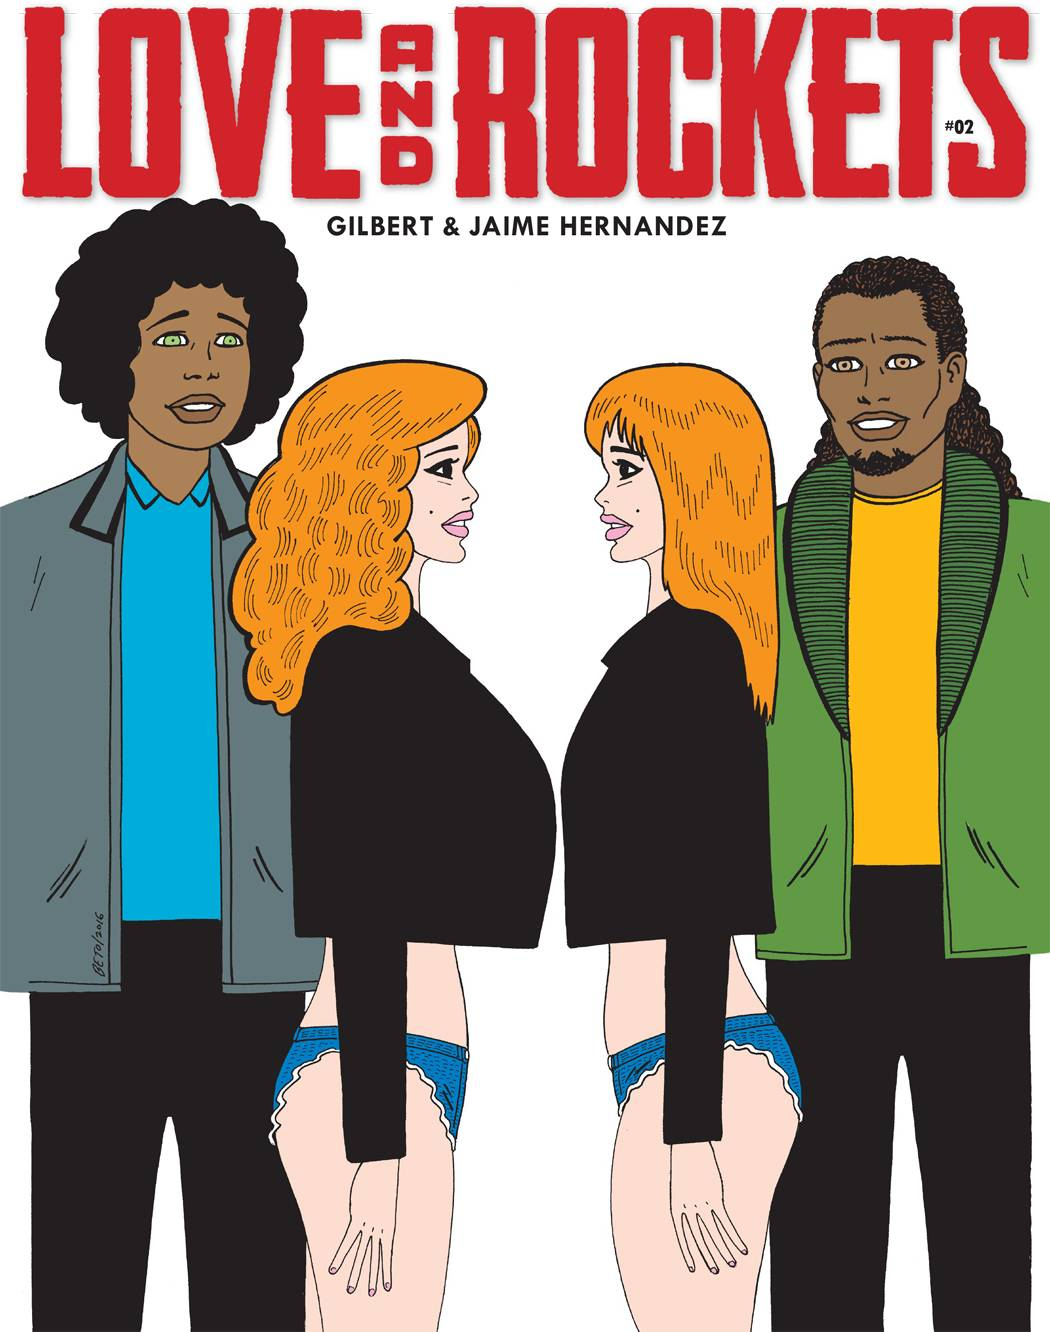 LOVE & ROCKETS MAGAZINE #2